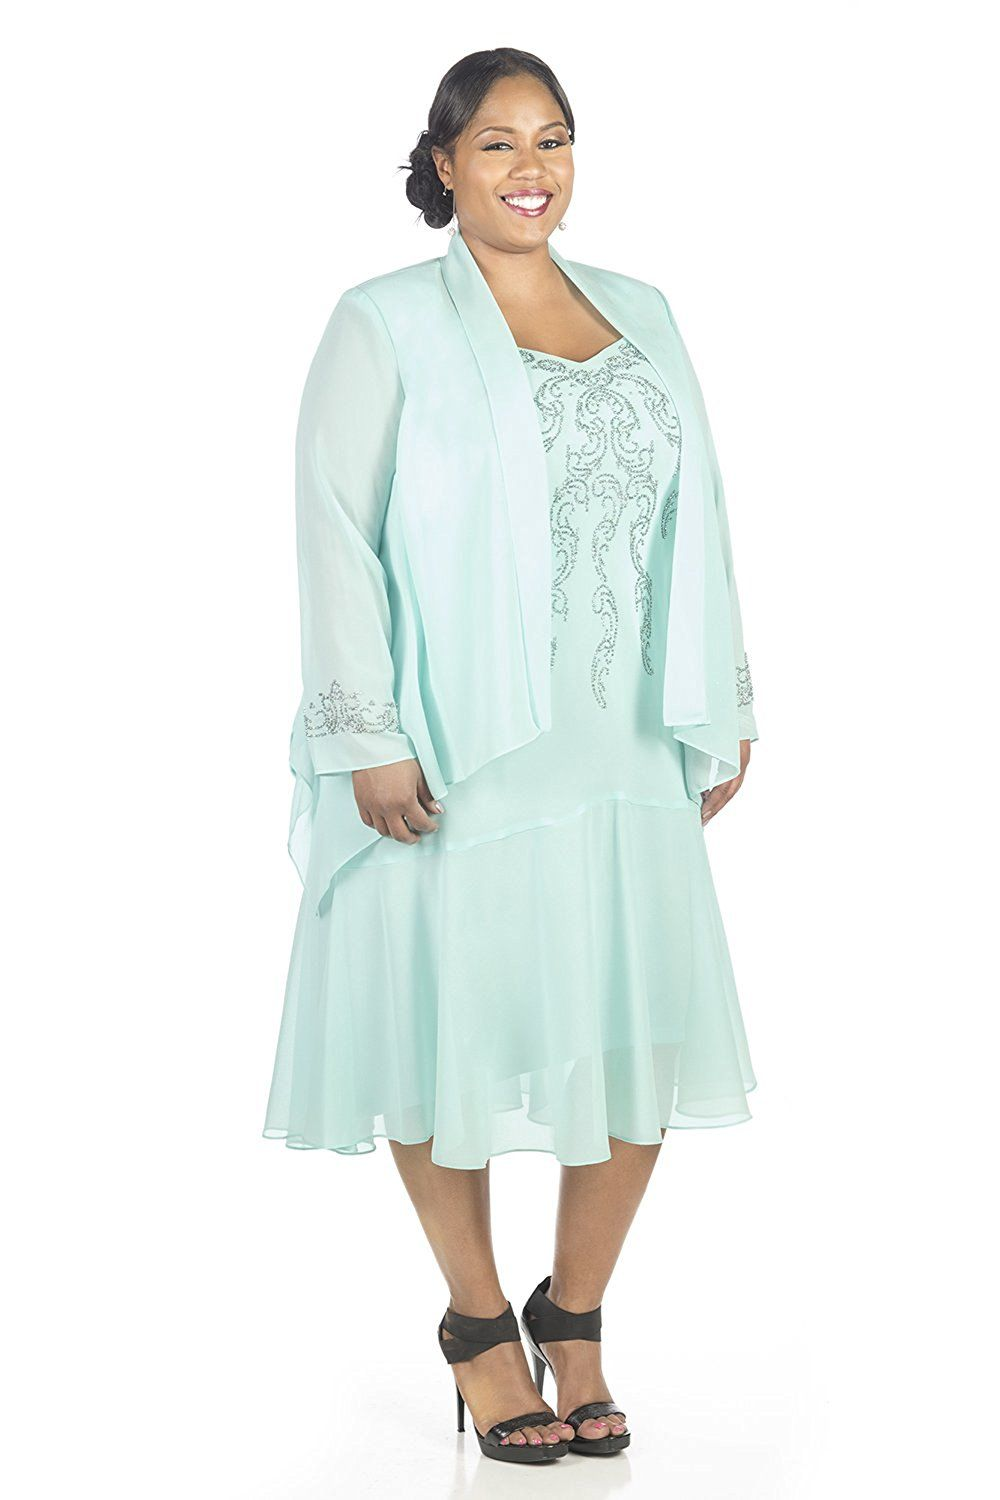 Randm richards womenus plus size beaded jacket dress mother of the